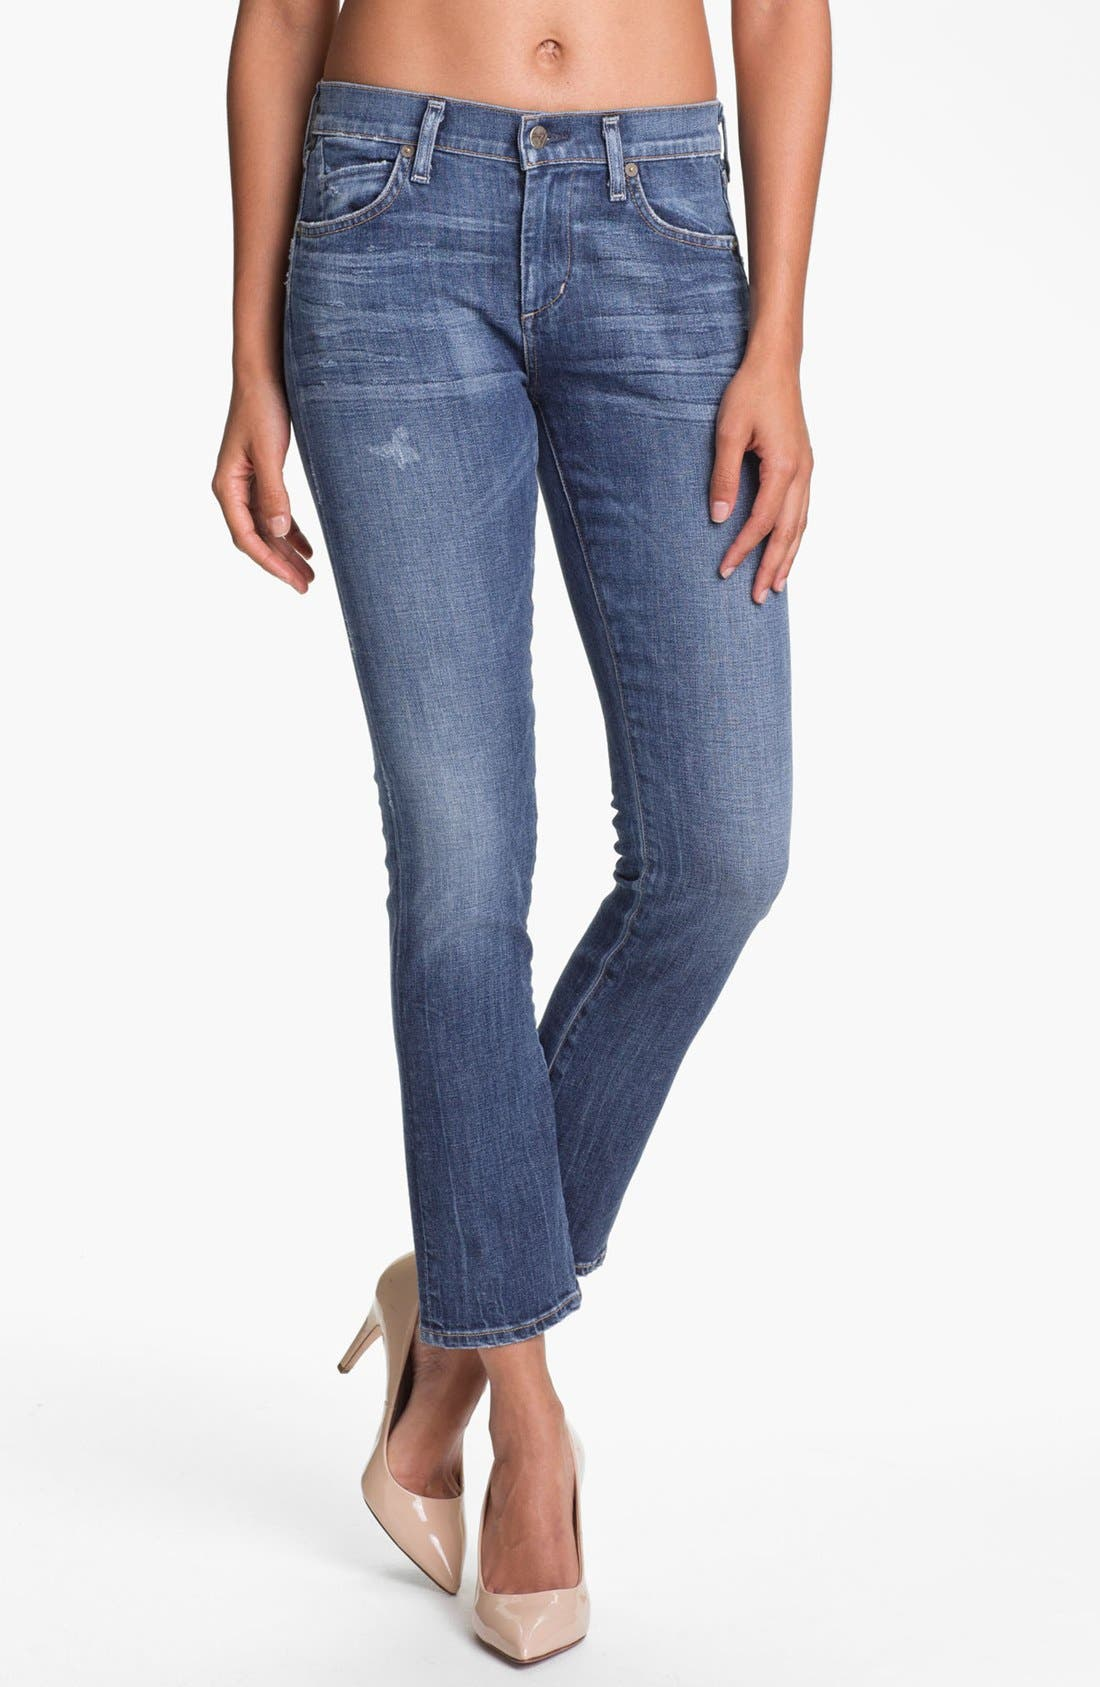 Alternate Image 1 Selected - Citizens of Humanity 'Carlton' High Waist Straight Leg Jeans (Nova)